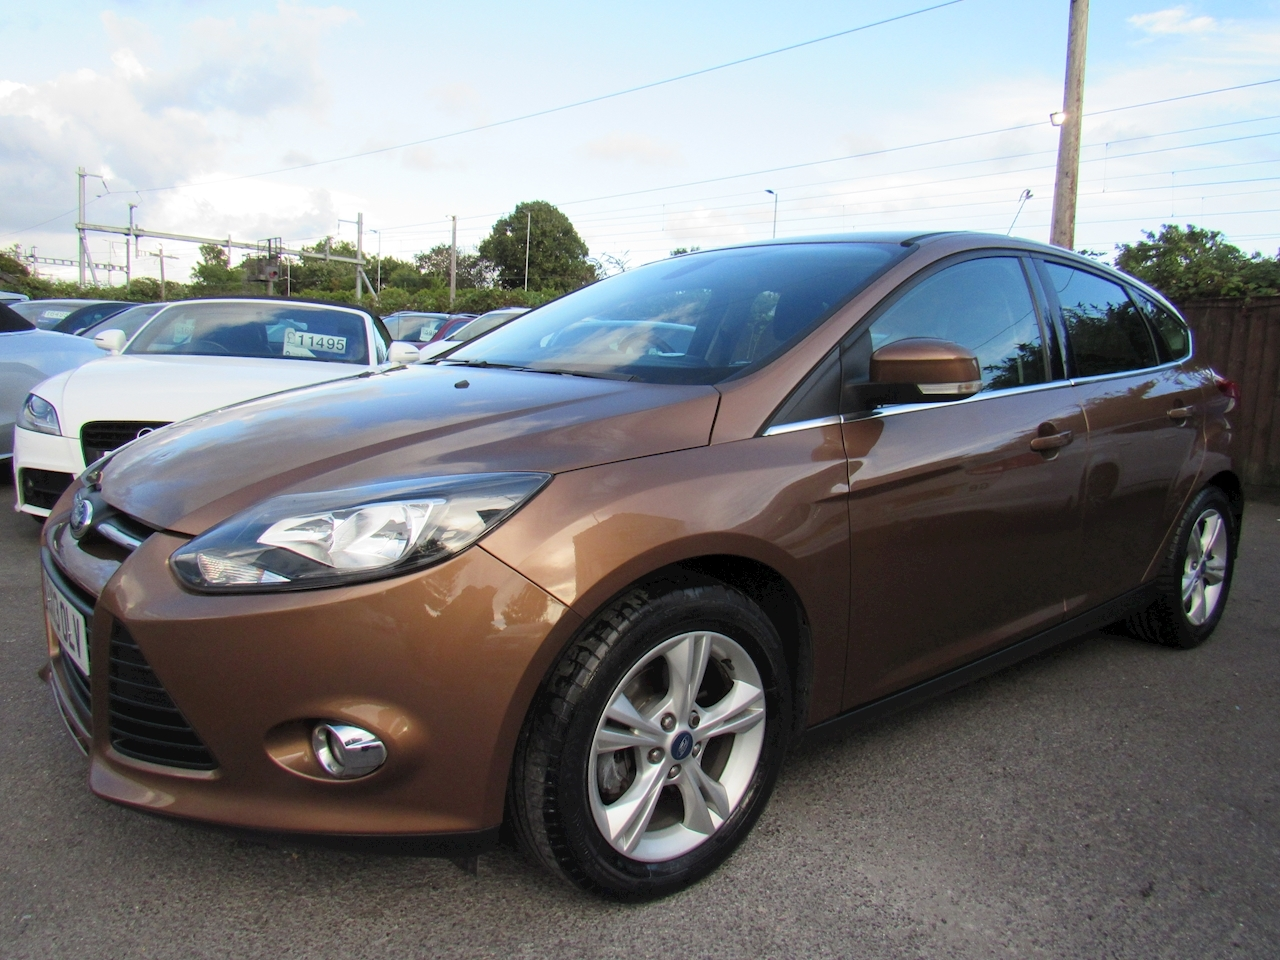 Ford Focus Zetec Hatchback 1.6 Powershift Petrol